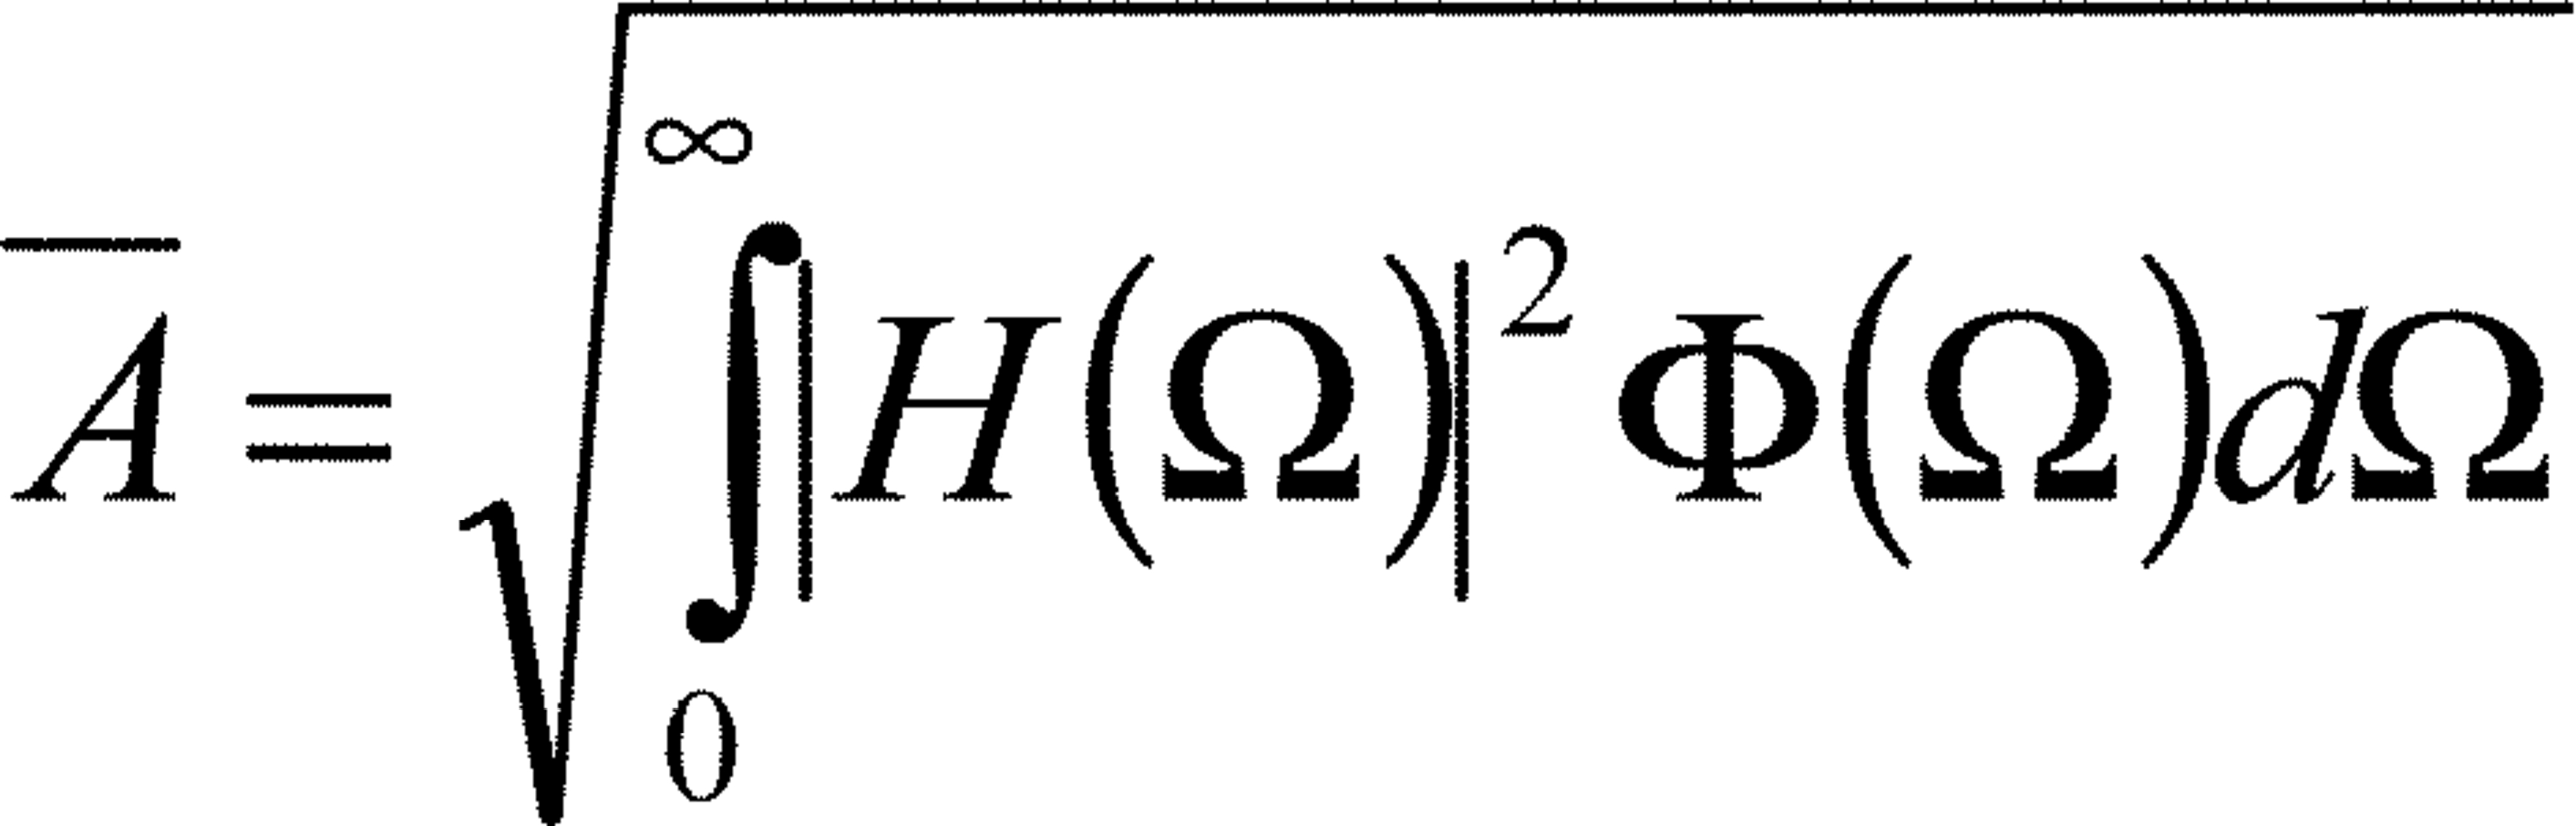 Graphic of (2) Values of A must be determined according to the following formula